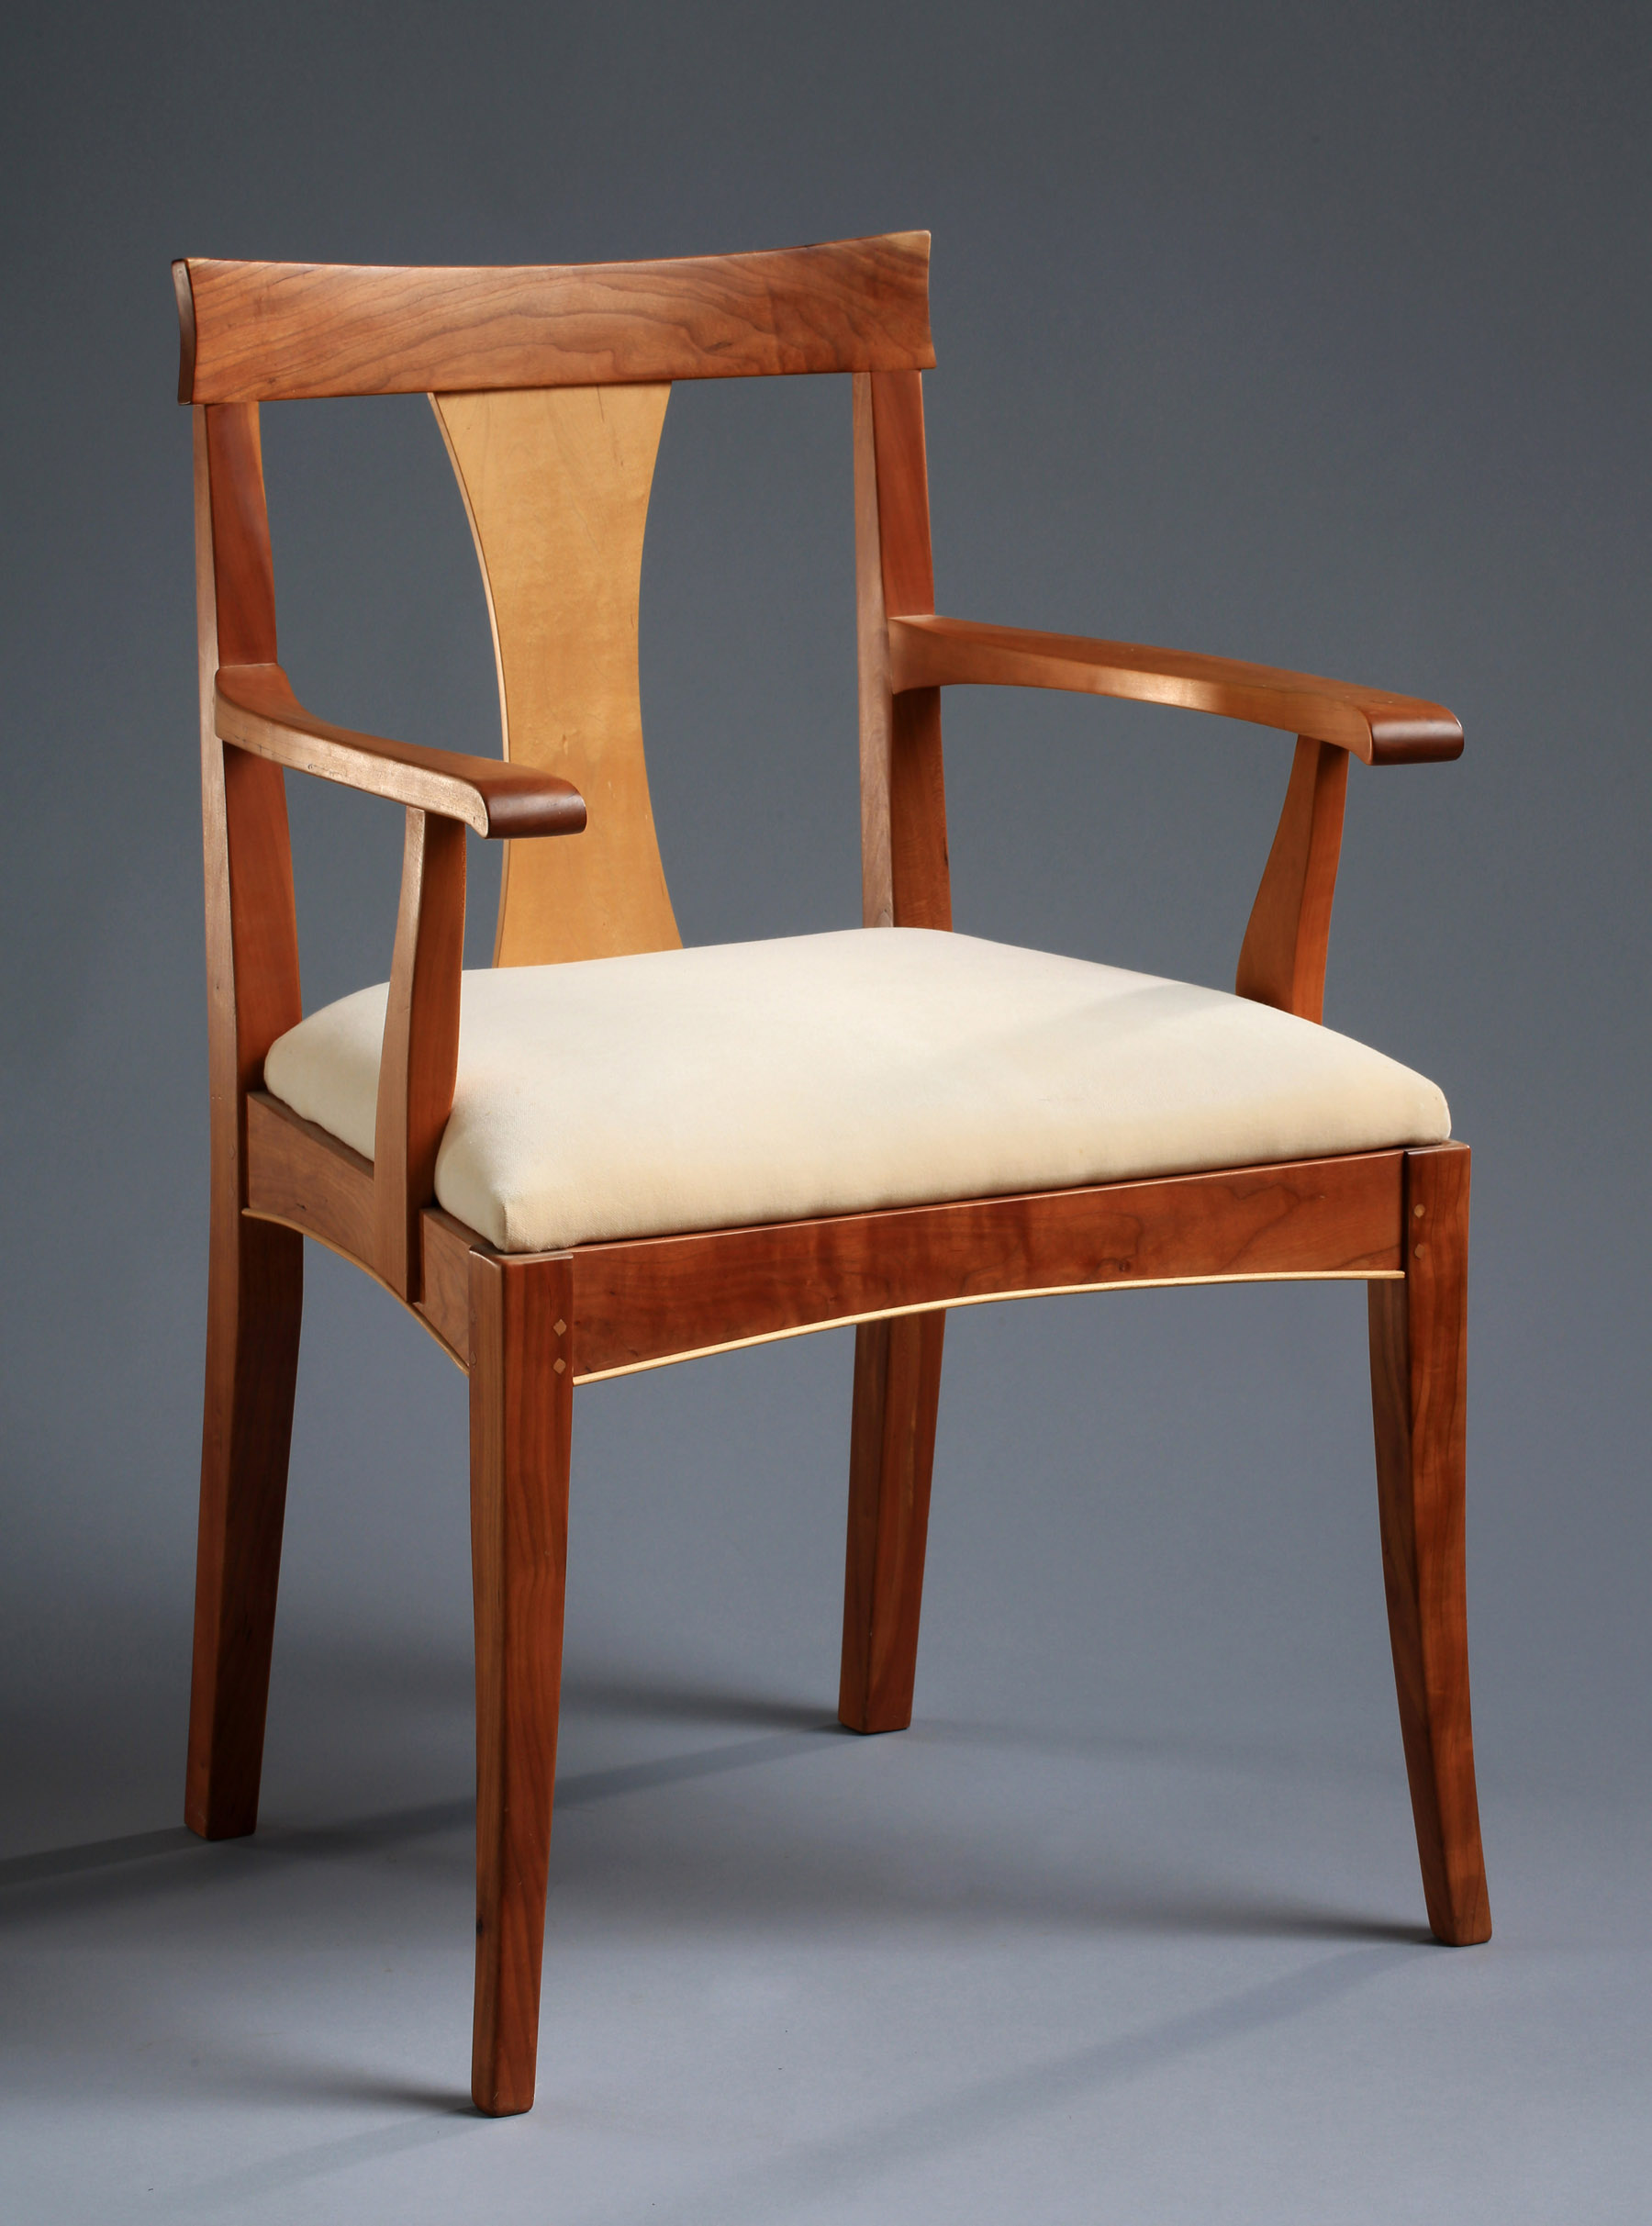 The Westport Arm Chair